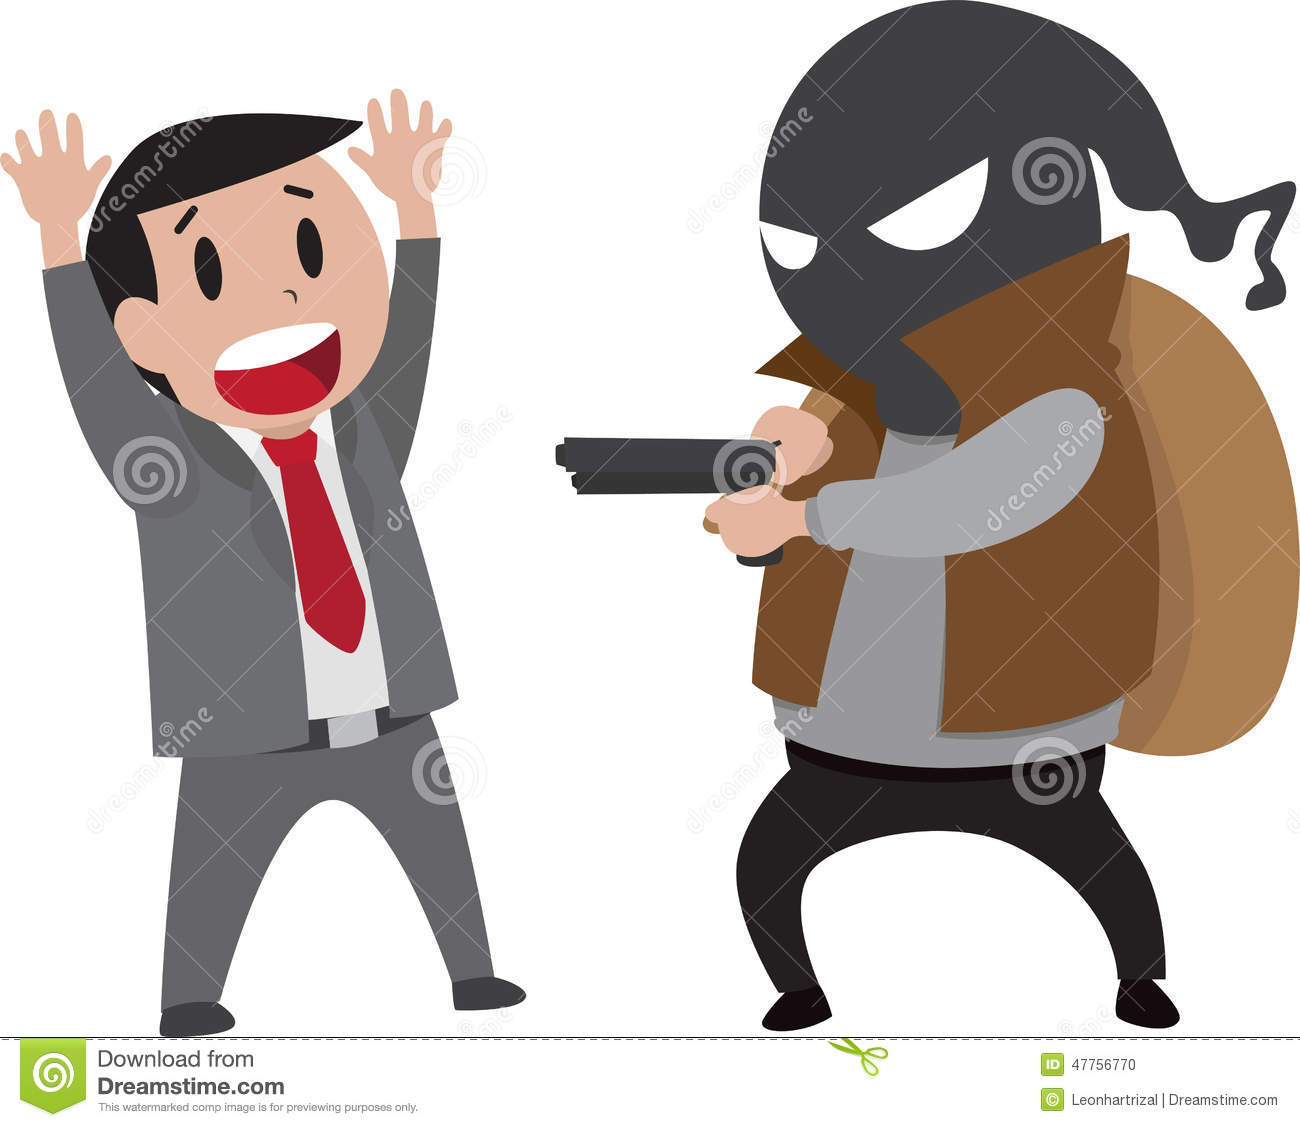 Robbery Stock Vector - Image: 47756770